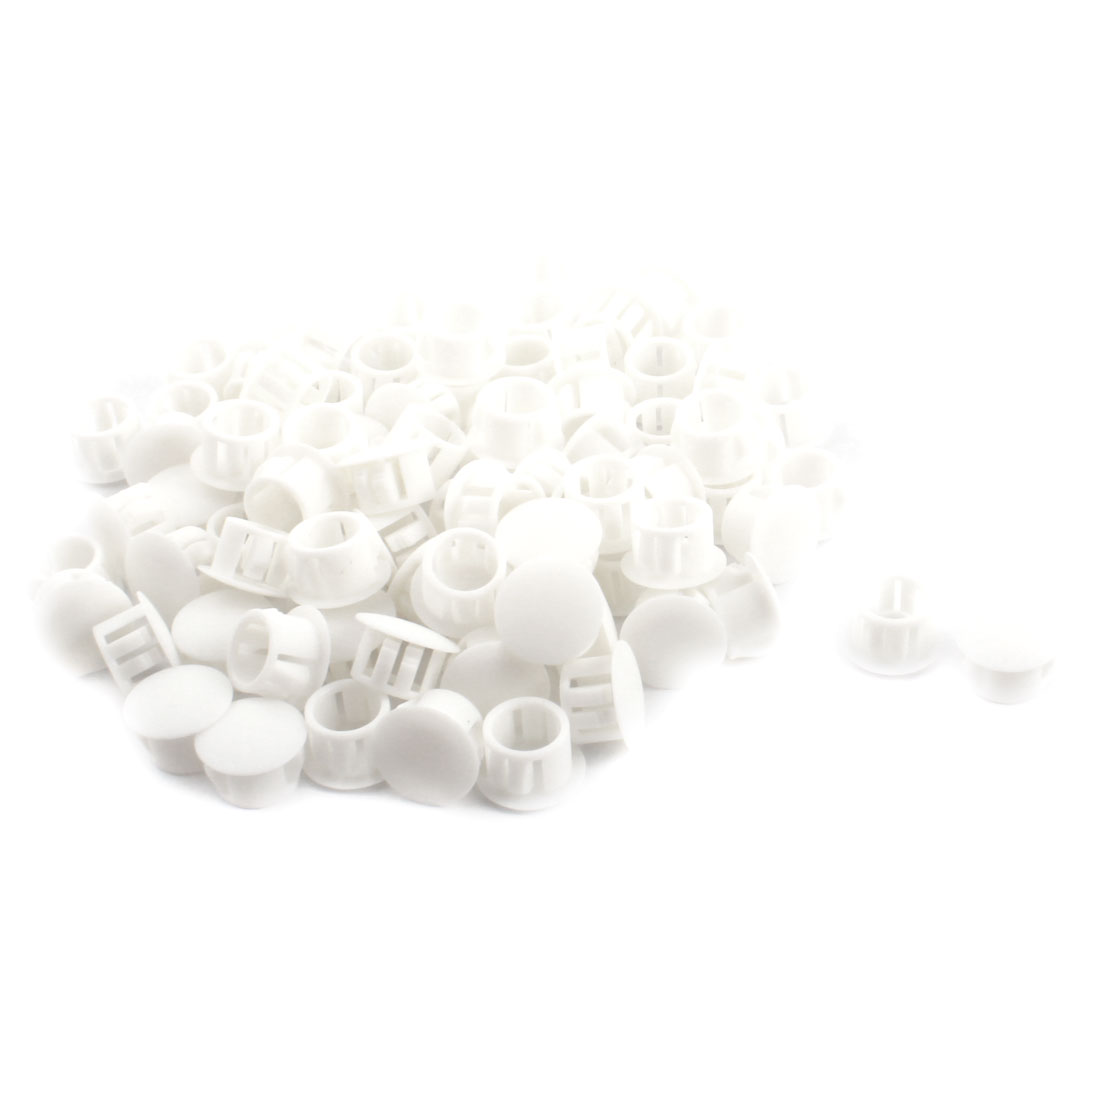 SKT-13 12.7mm Dia Round Insulated White Plastic Snap in Mount Lock Hole Plug Cover Harness Fastener 100Pcs